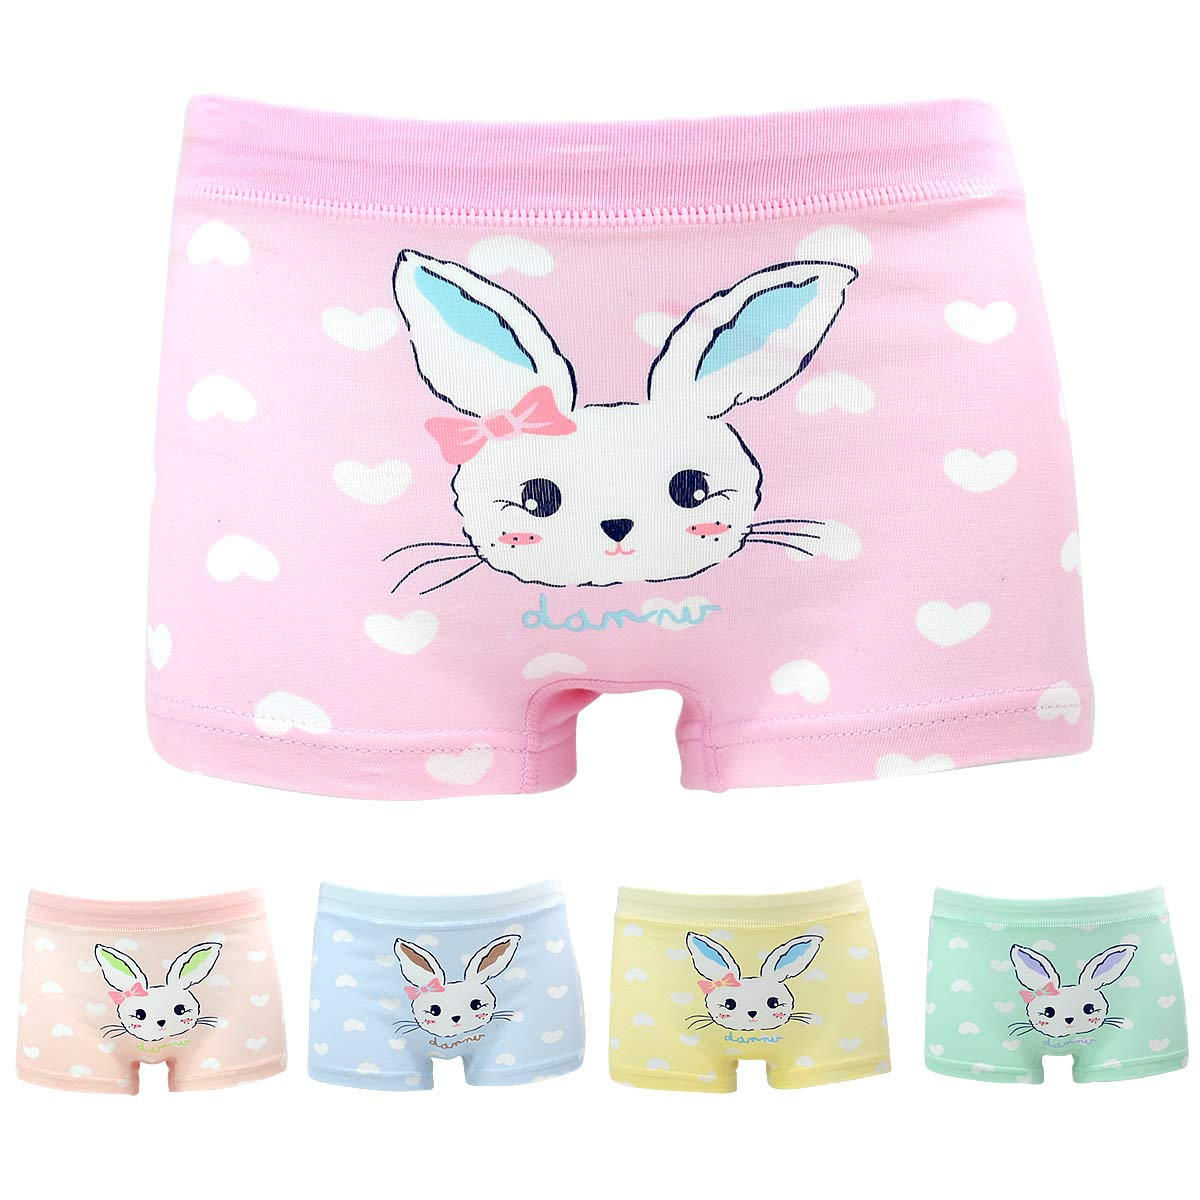 Little Girls' Rabbit Panties Bunny Boyshort Pink Undies 5 Pack Boxer Briefs for Kids